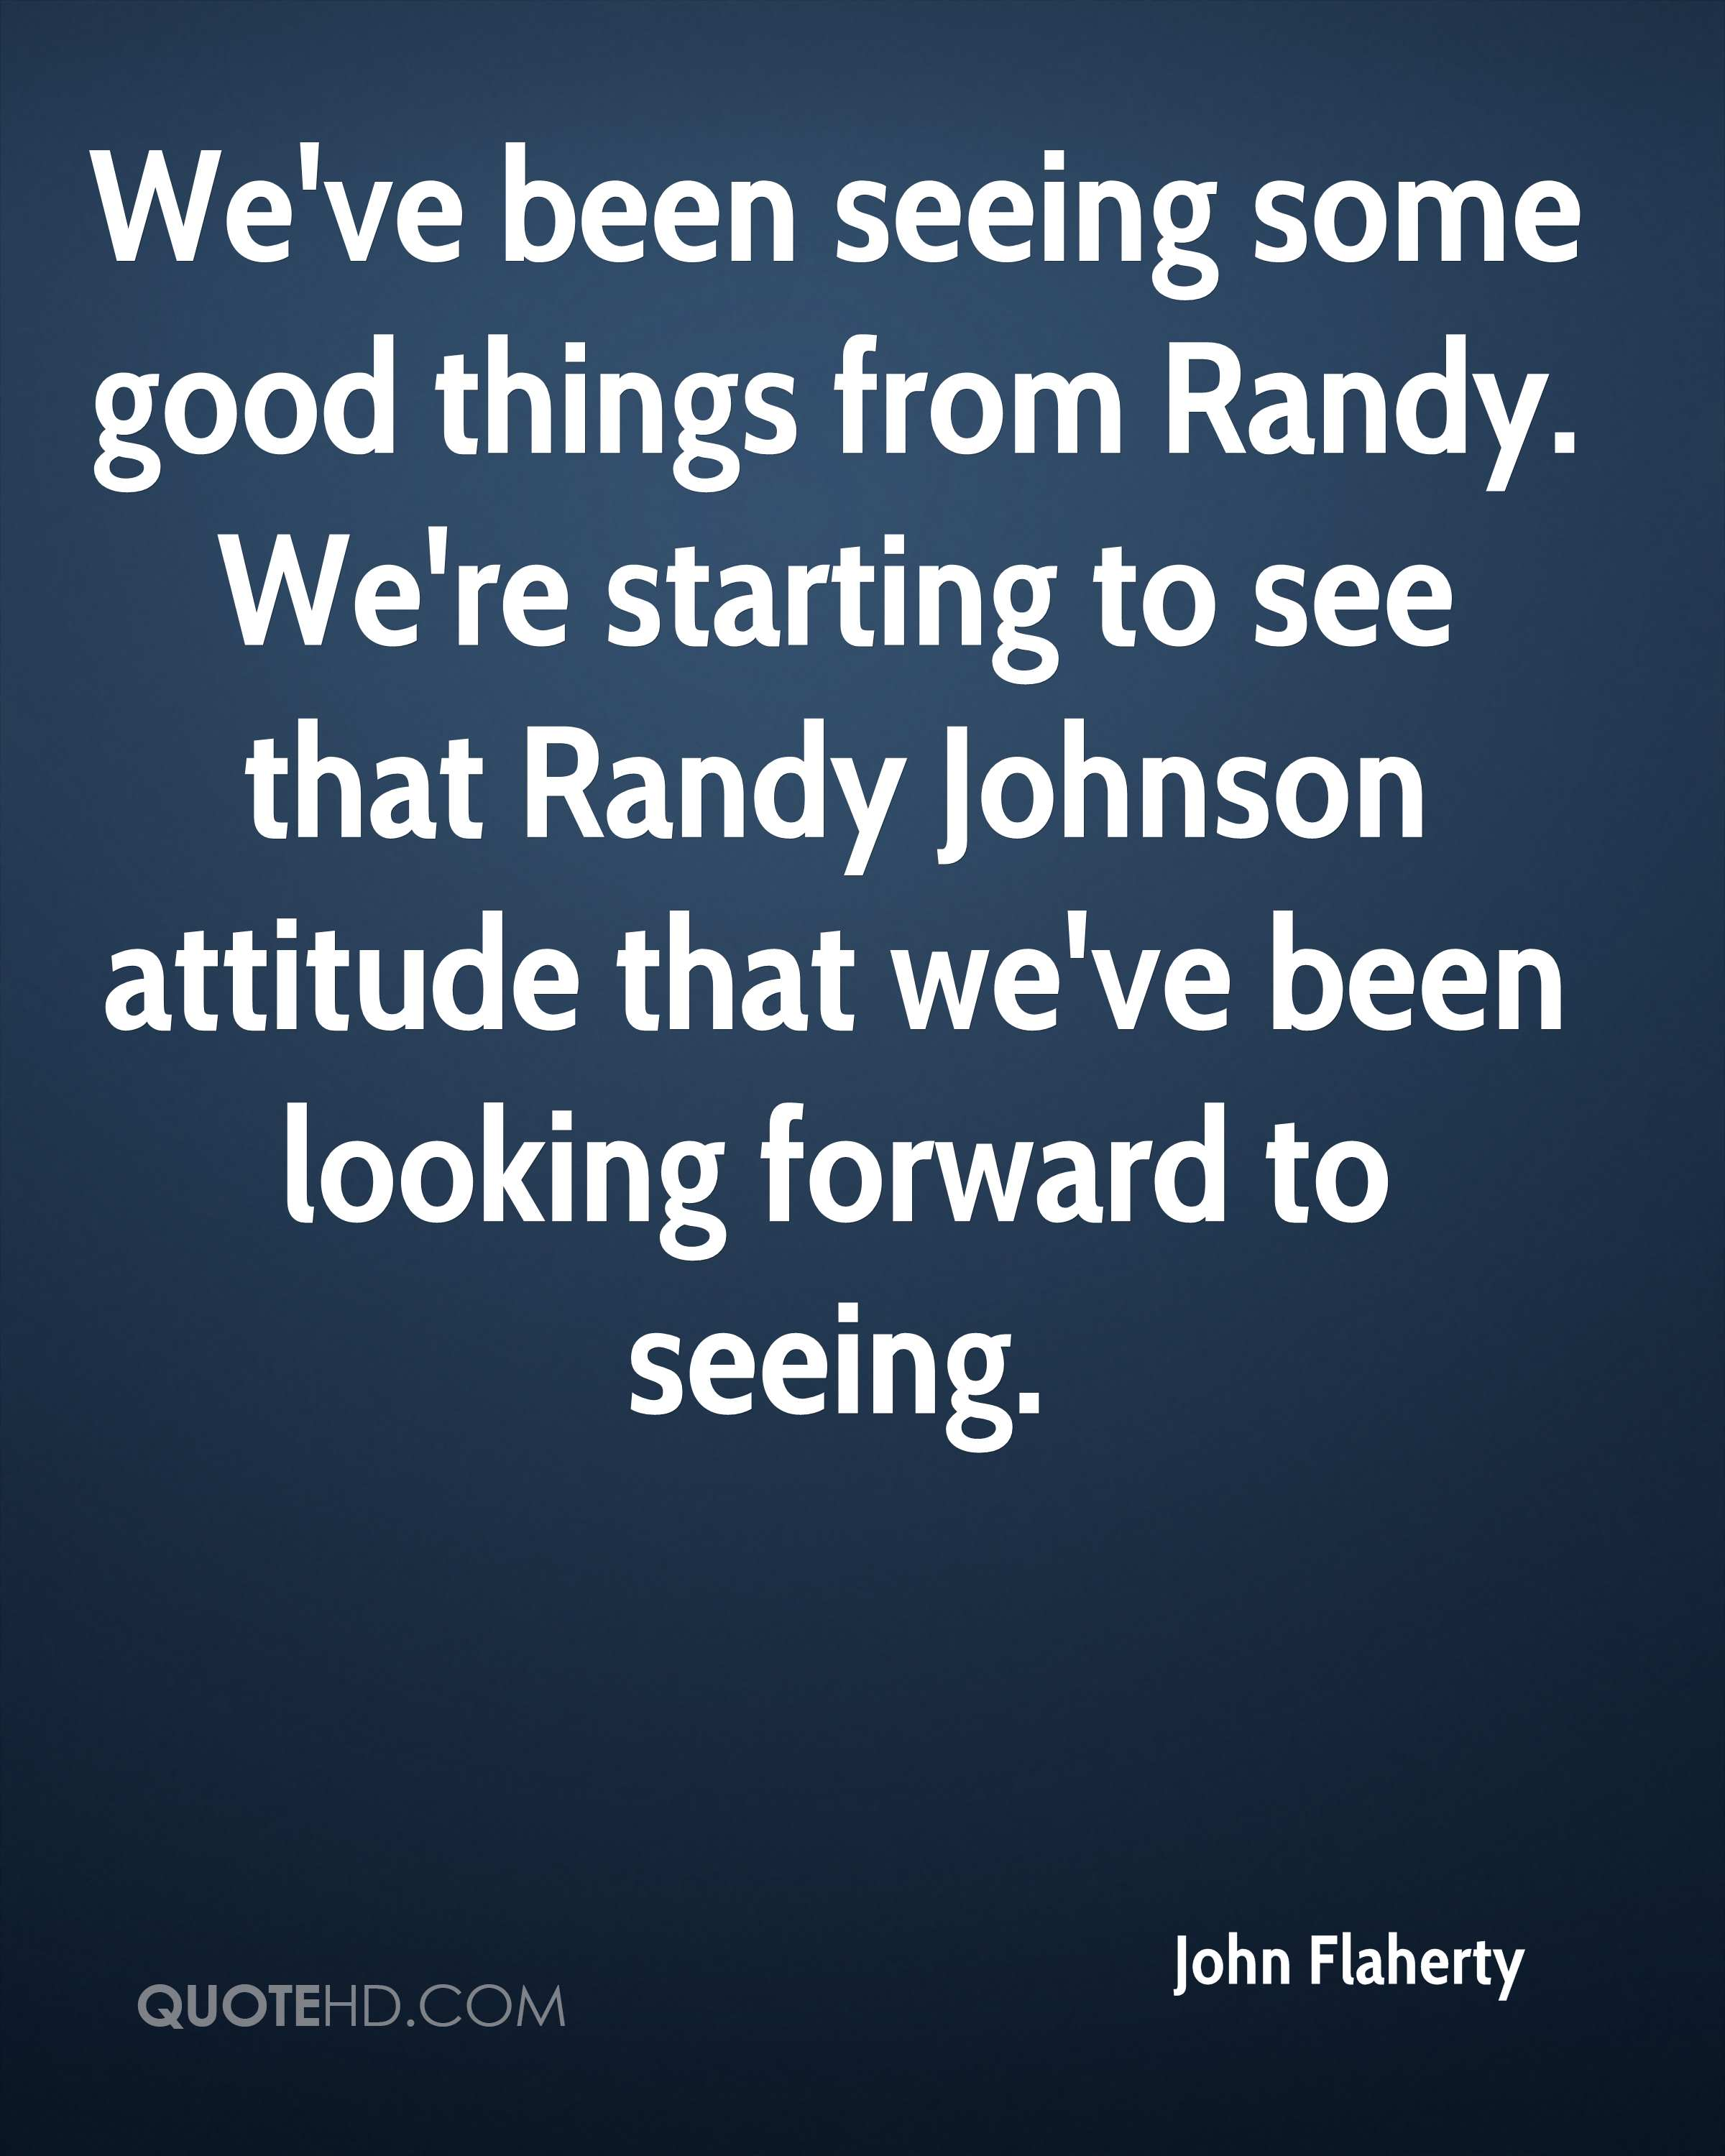 We've been seeing some good things from Randy. We're starting to see that Randy Johnson attitude that we've been looking forward to seeing.